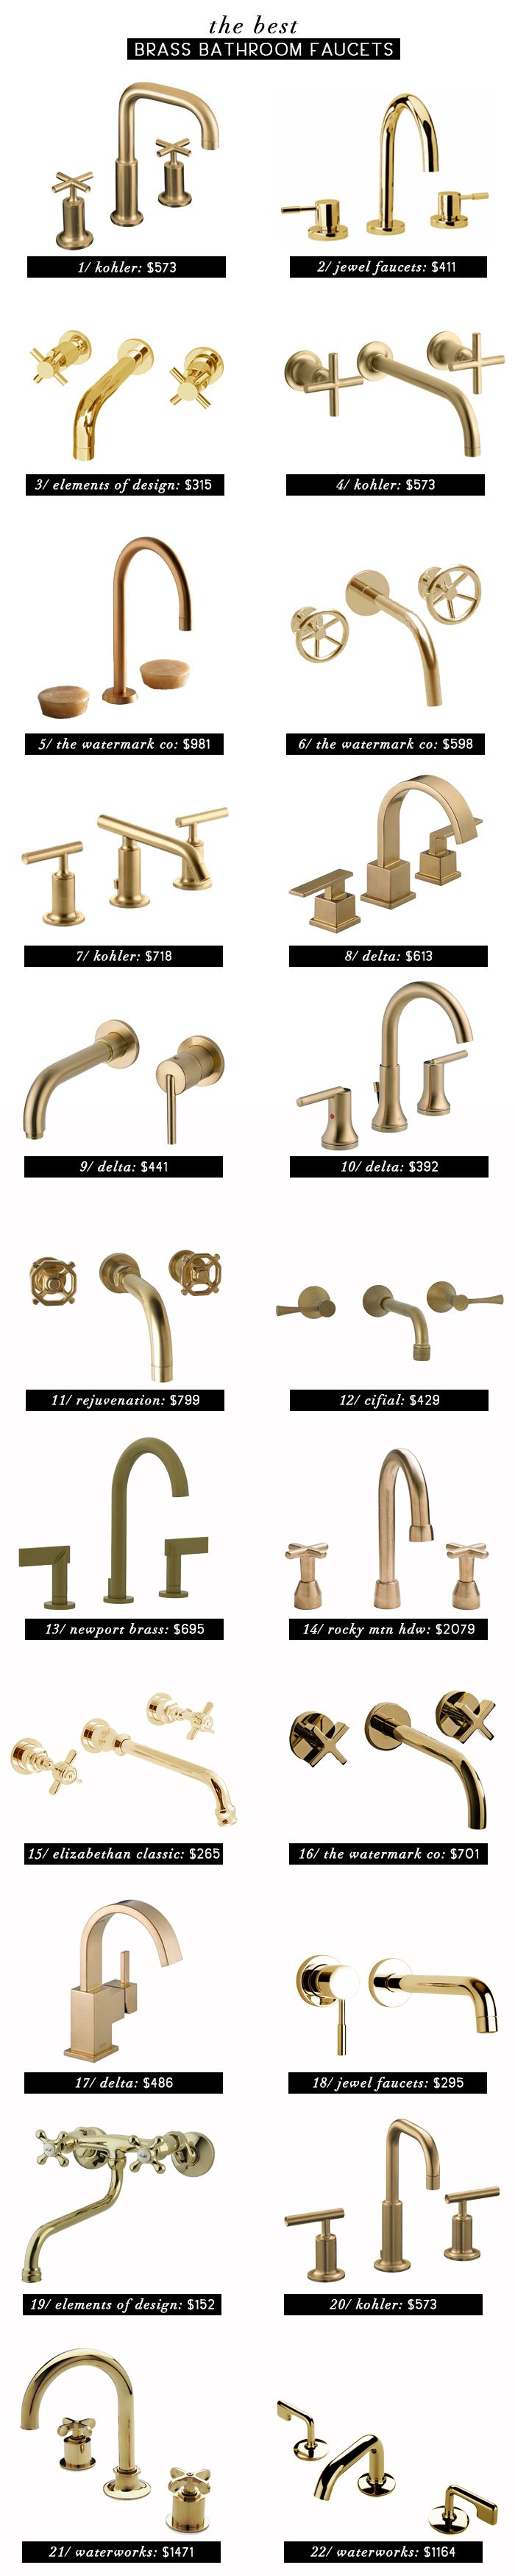 Brass Faucets � a roundup                                                                                                                                                                                 More